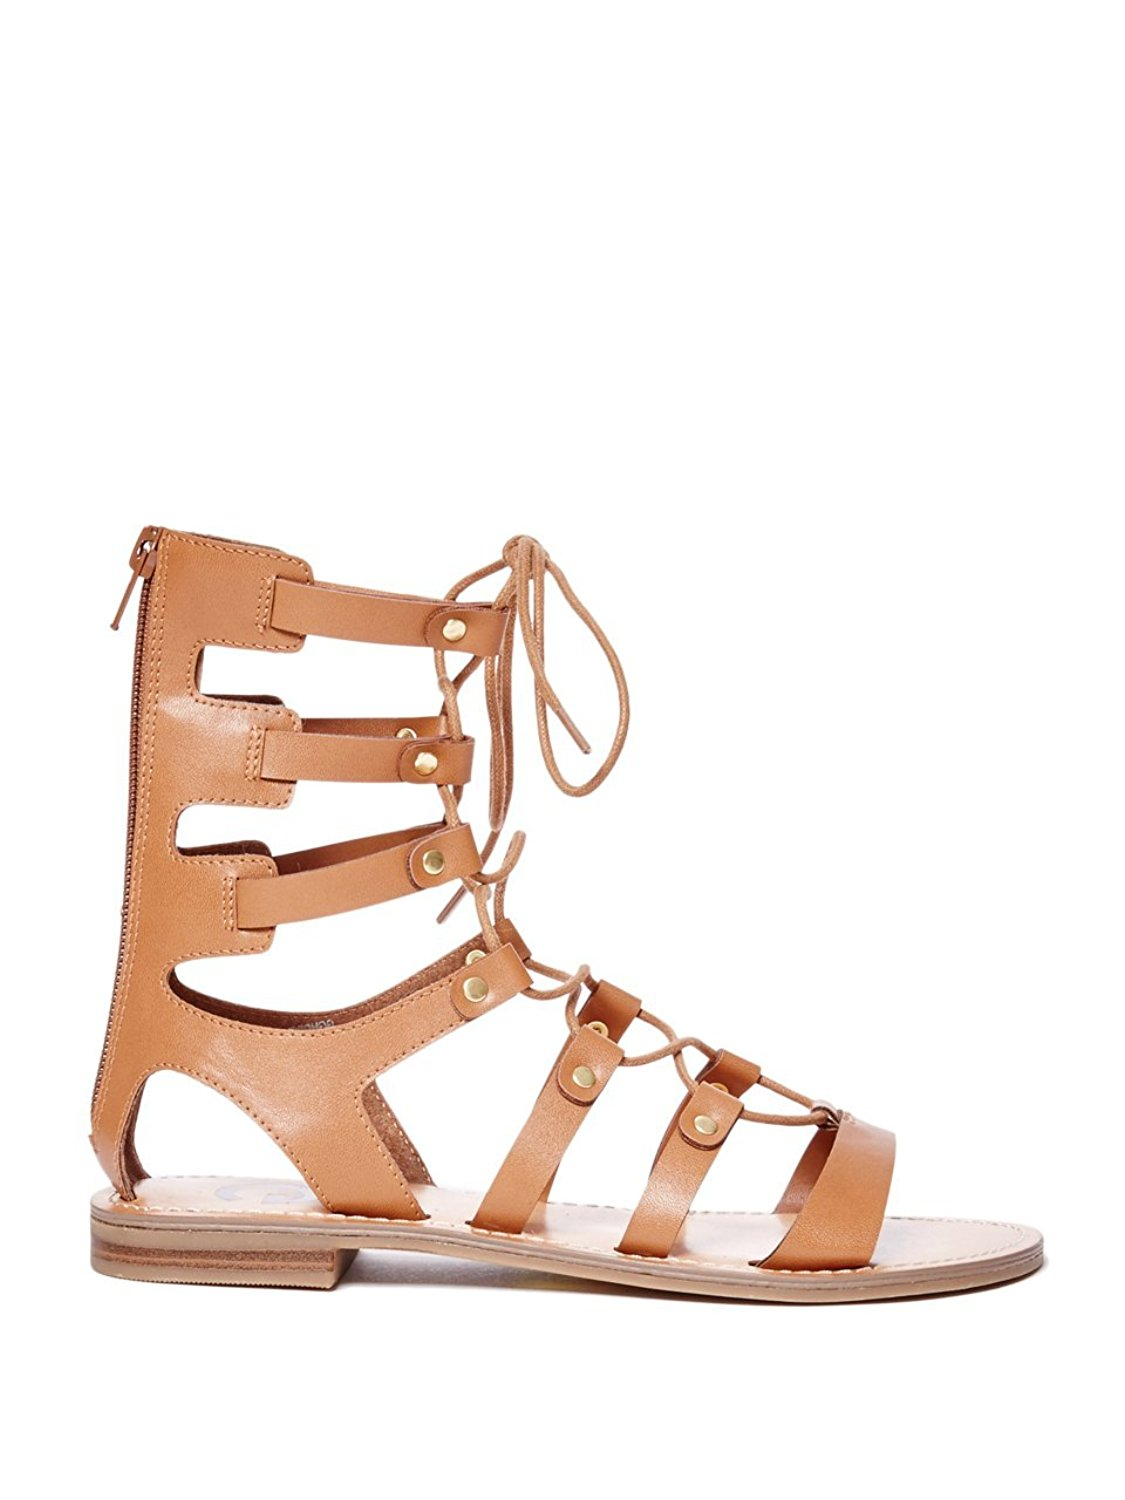 970095738822 G by Guess Womens Hopey Open Toe Casual Gladiator Sandals